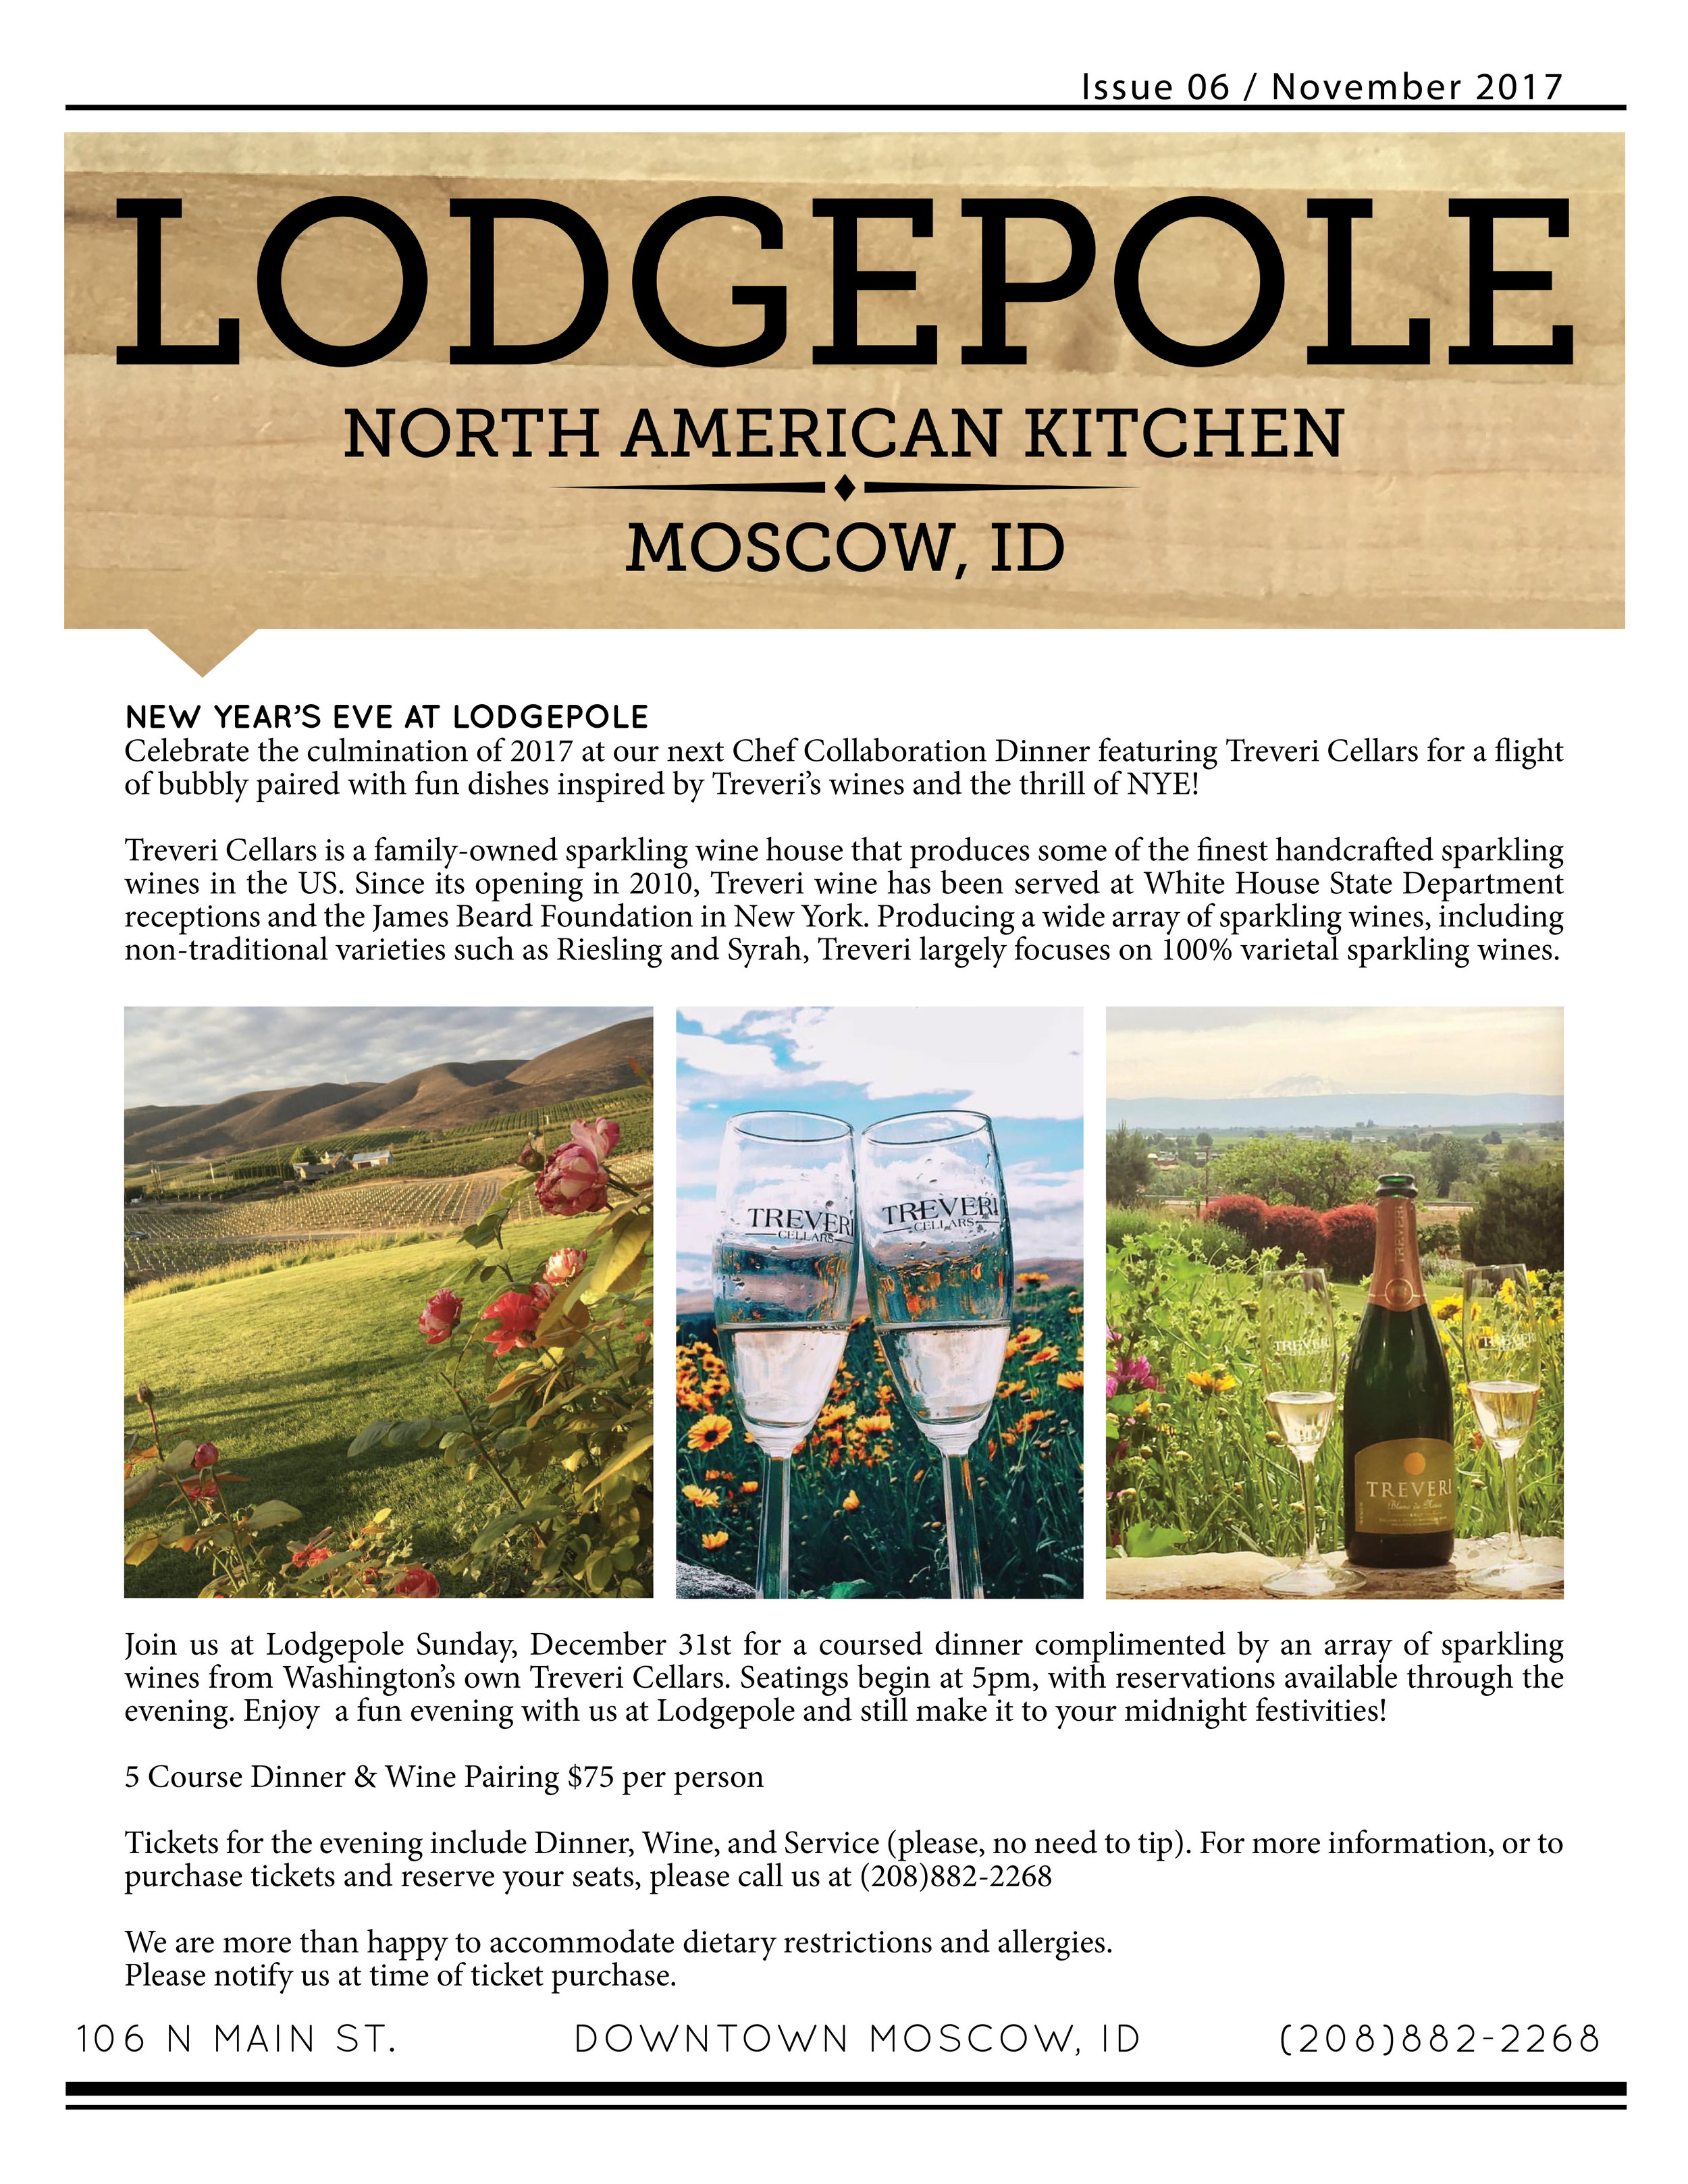 New Year's Eve at Lodgepole